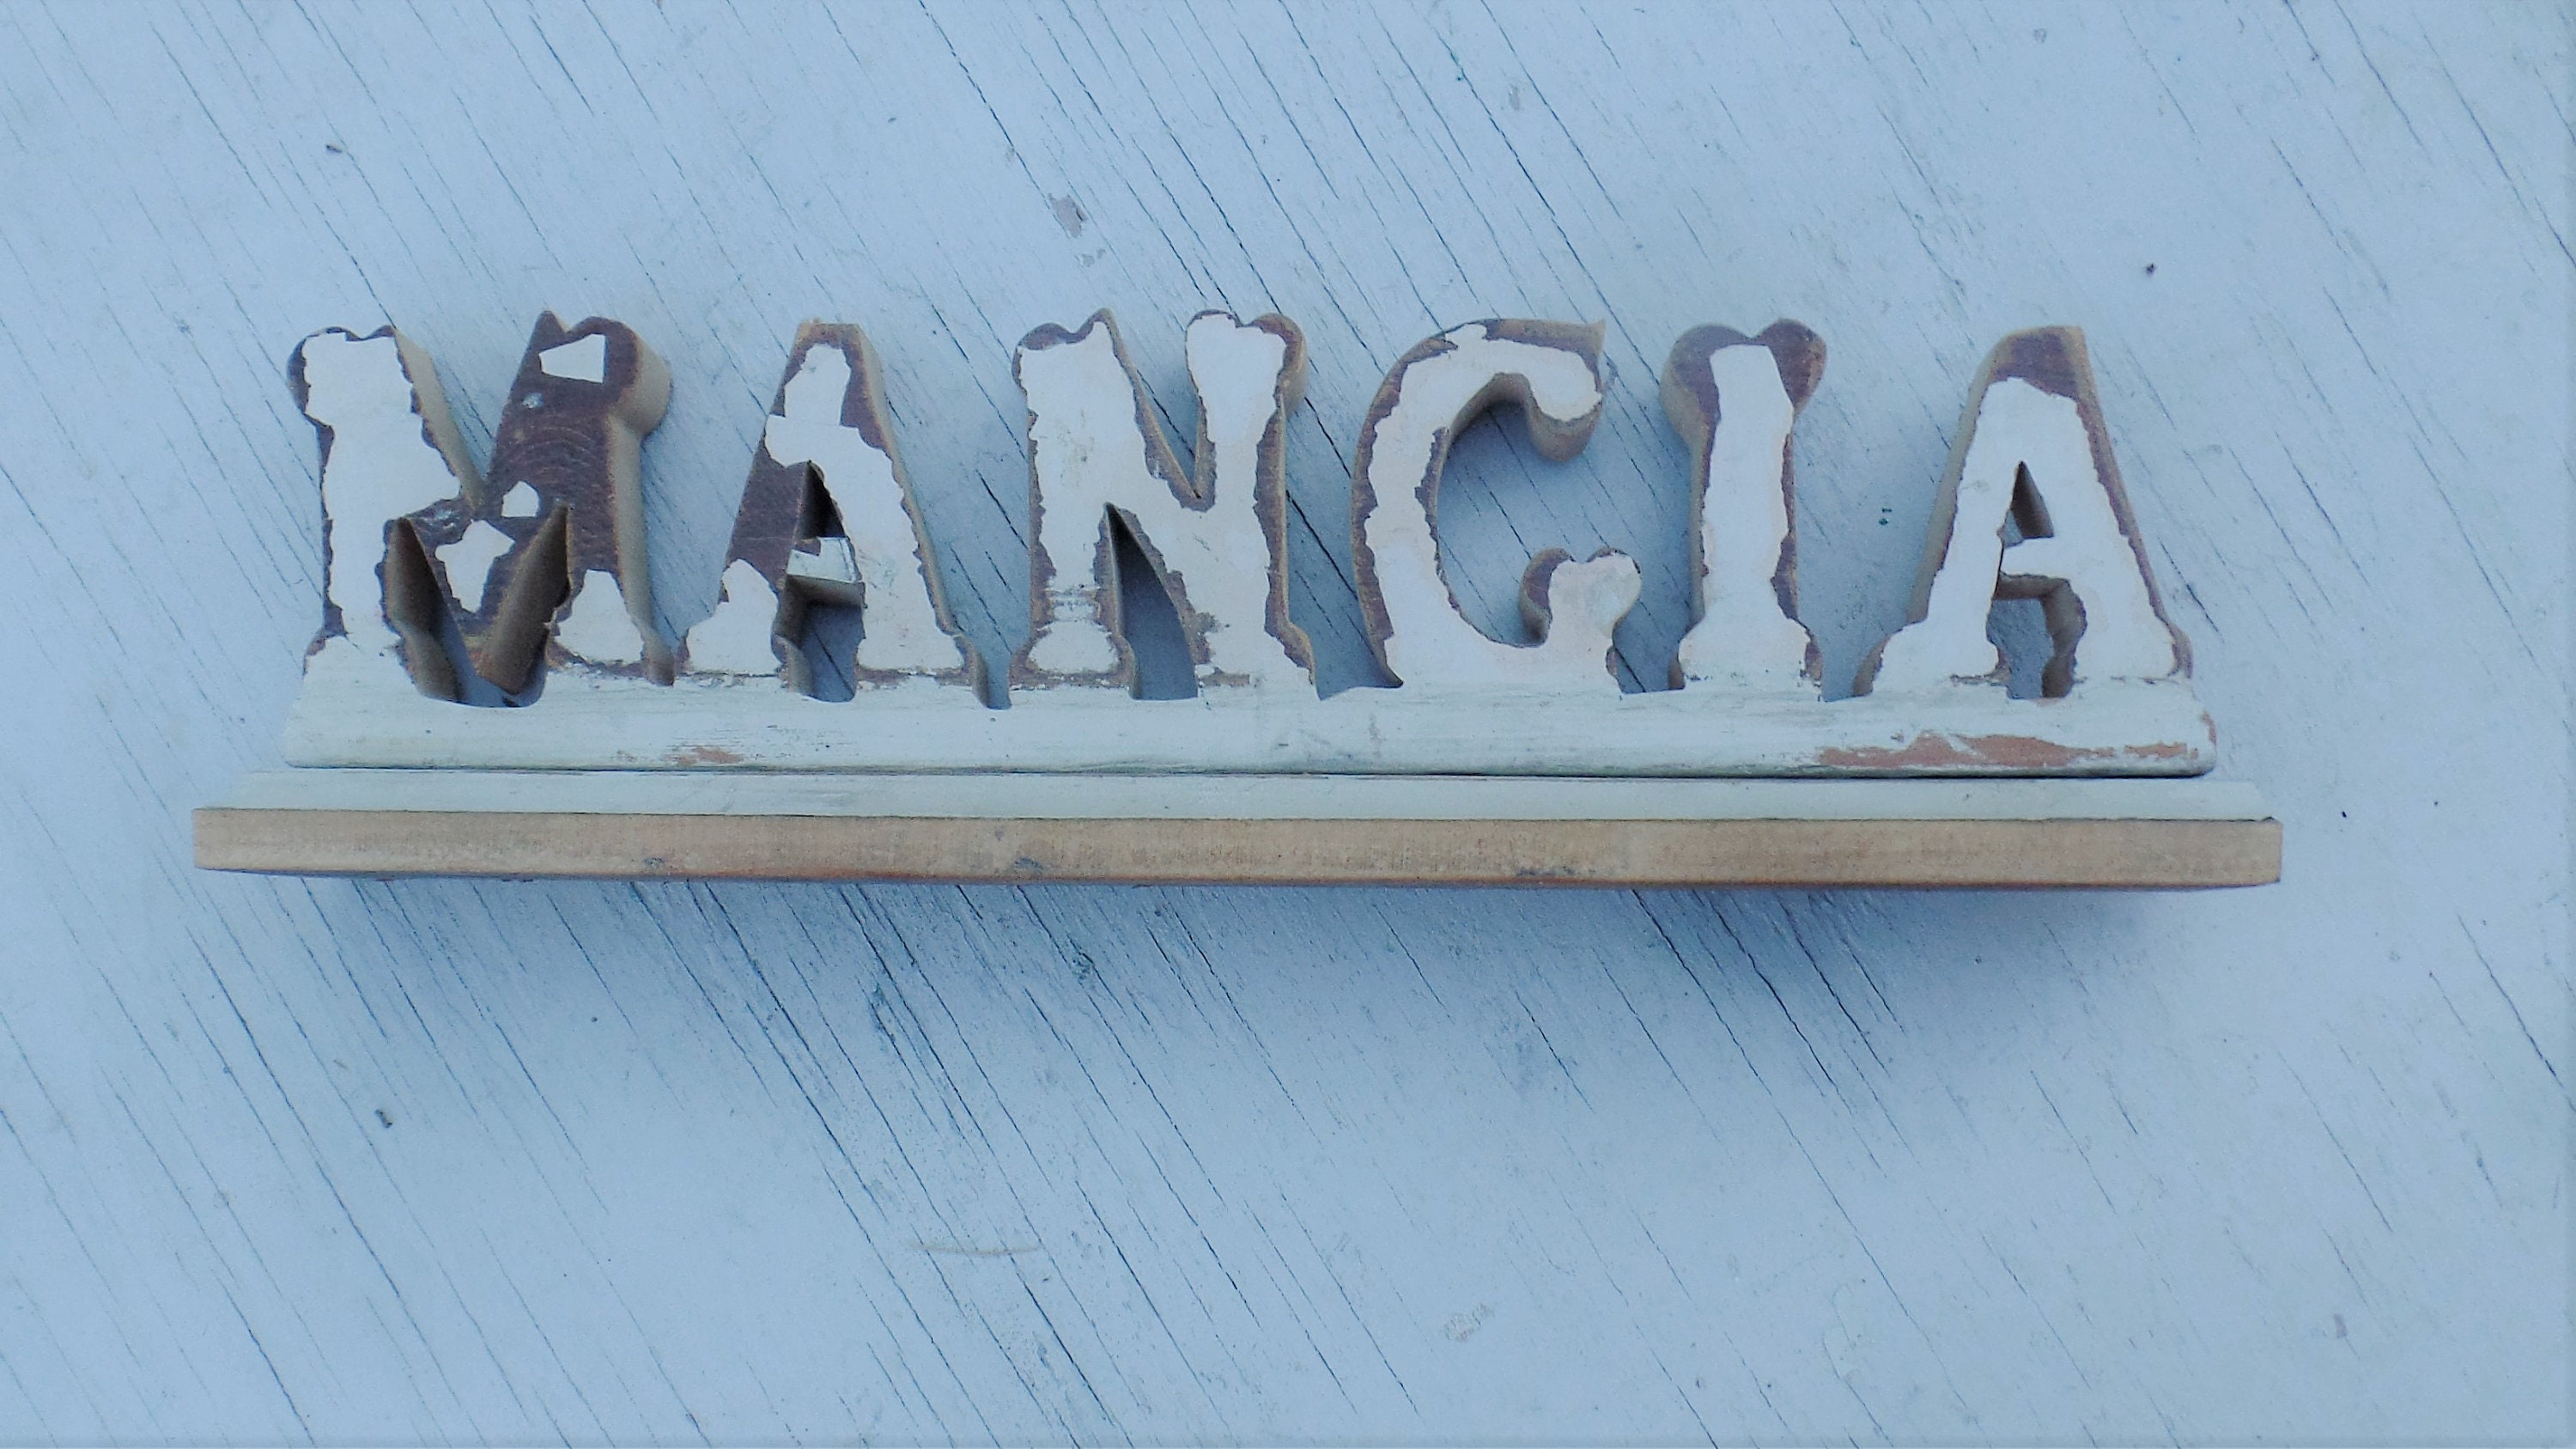 Mangia Salvaged Wood Italian Kitchen Sign Distressed Wooden   Etsy